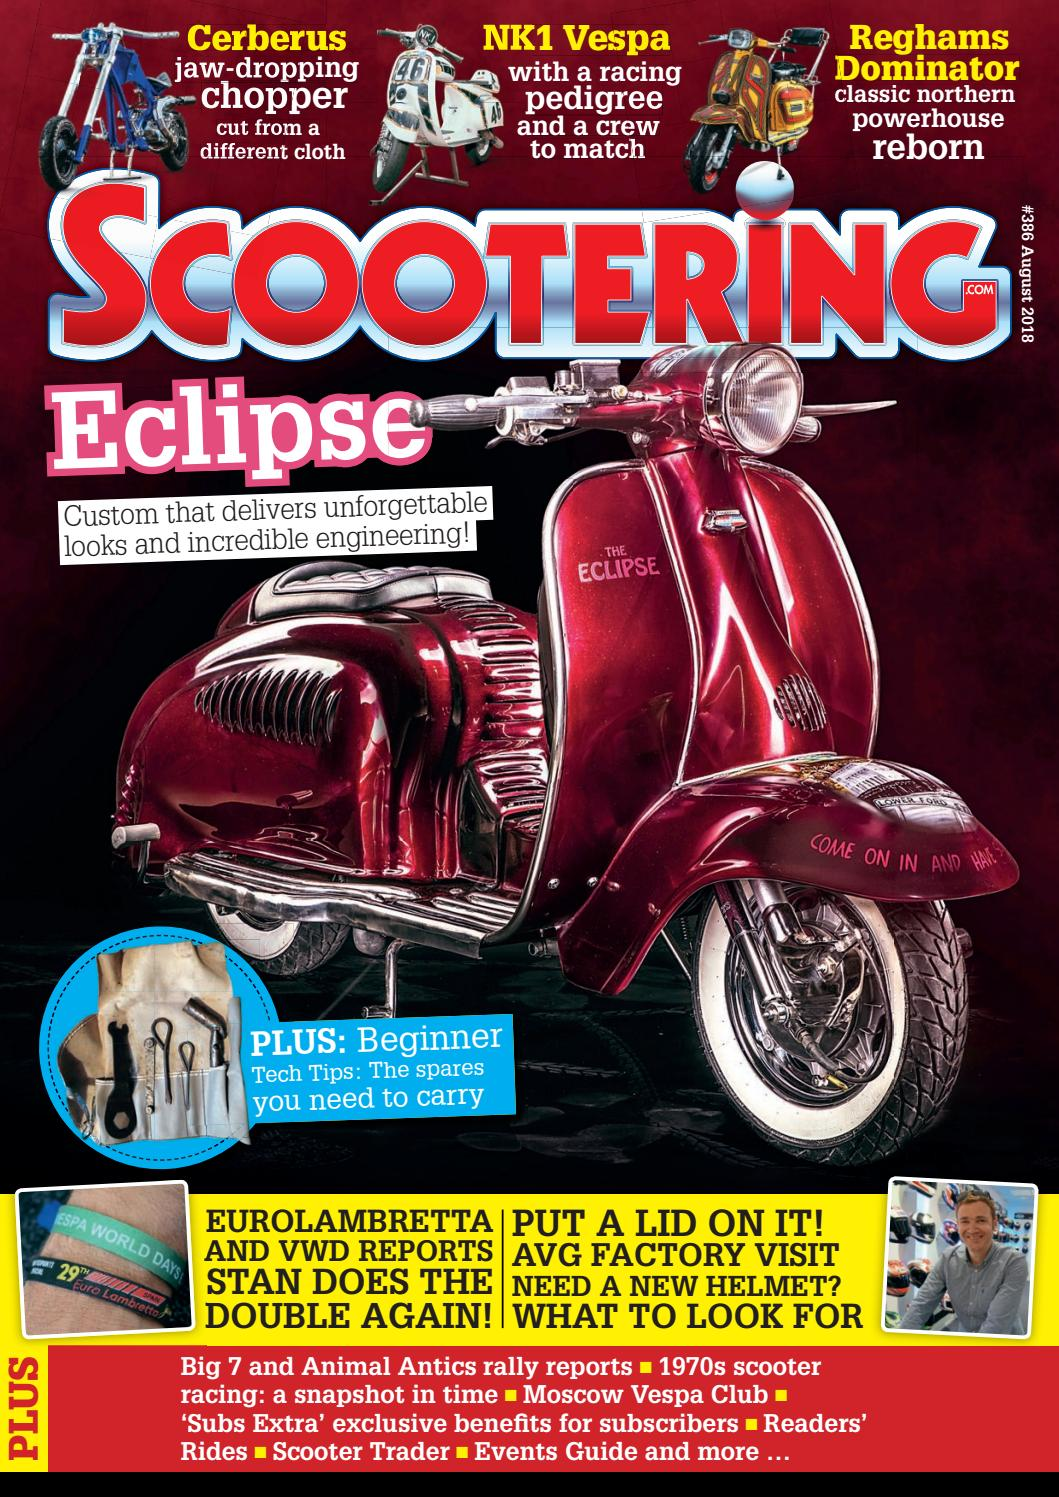 Scootering Magazine - August 218 - Issue 386 by Mortons